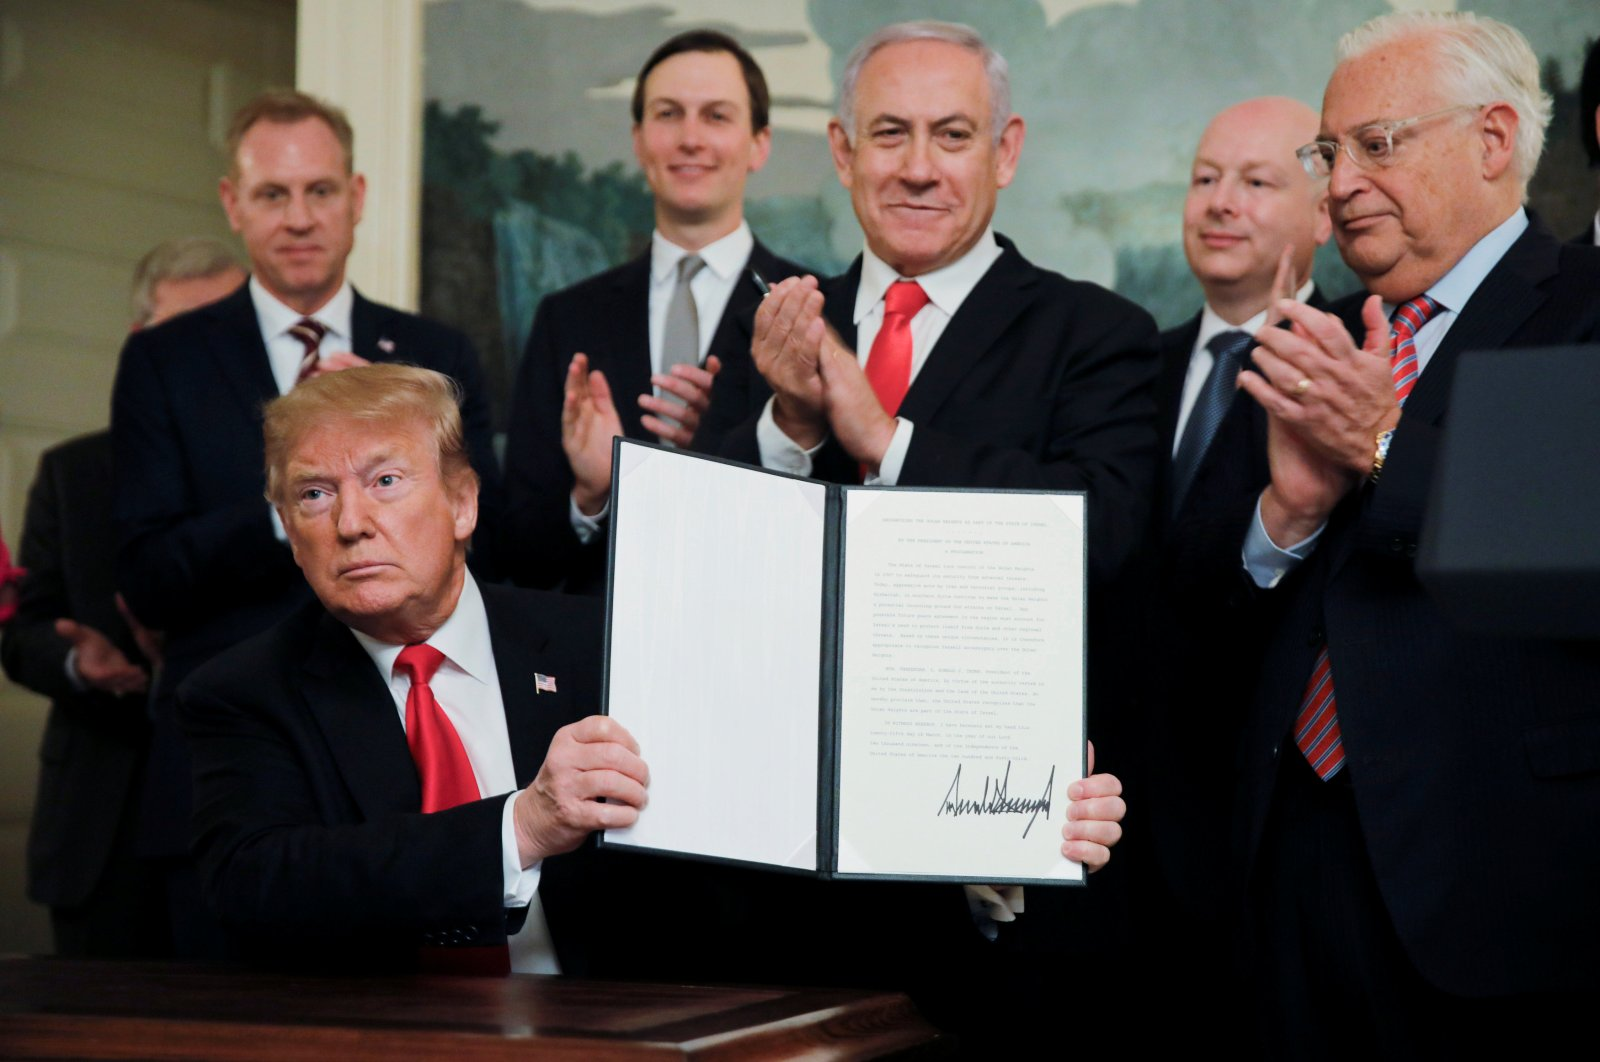 U.S. President Donald Trump holds a proclamation recognizing Israel's sovereignty over the Golan Heights as he is applauded by Israel's Prime Minister Benjamin Netanyahu and others during a ceremony at the White House in Washington, D.C., U.S., March 25, 2019. (Reuters Photo)